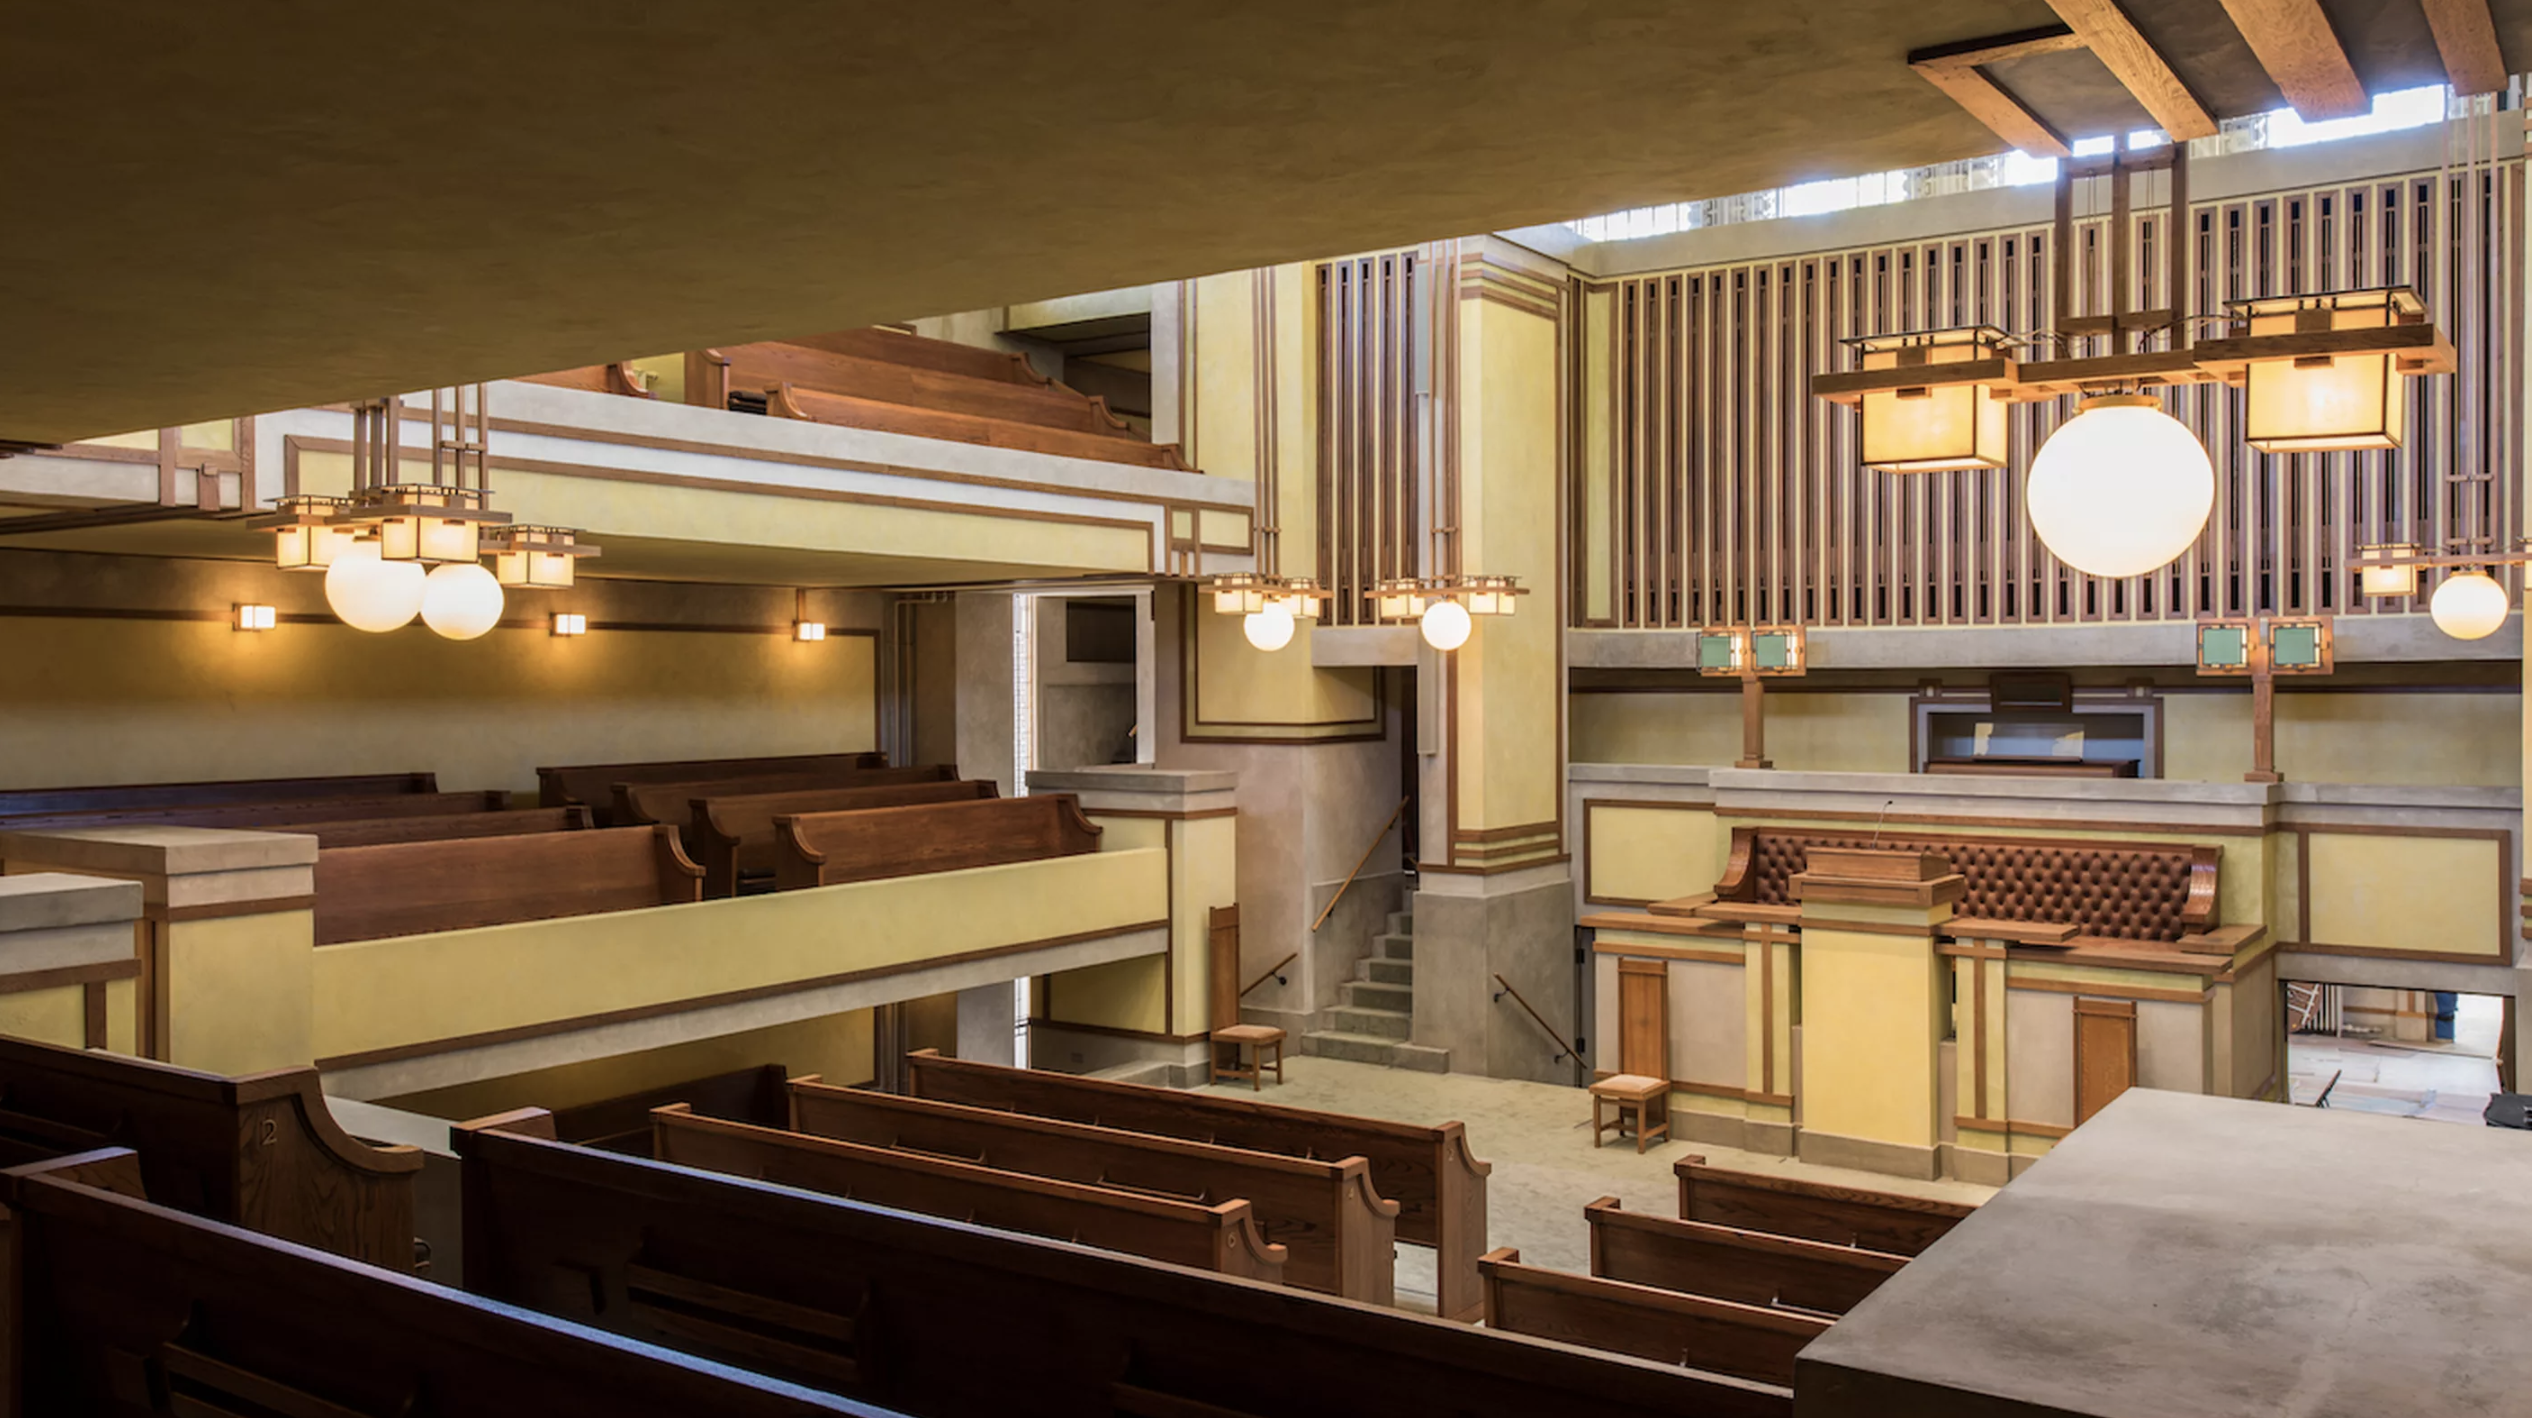 The sanctuary of a Frank Lloyd Wright-designed Unitarian Universalist church. The square room has wooden pews and three levels of seating. the walls are earth toned with wood trim and the coffered ceiling is skylit.